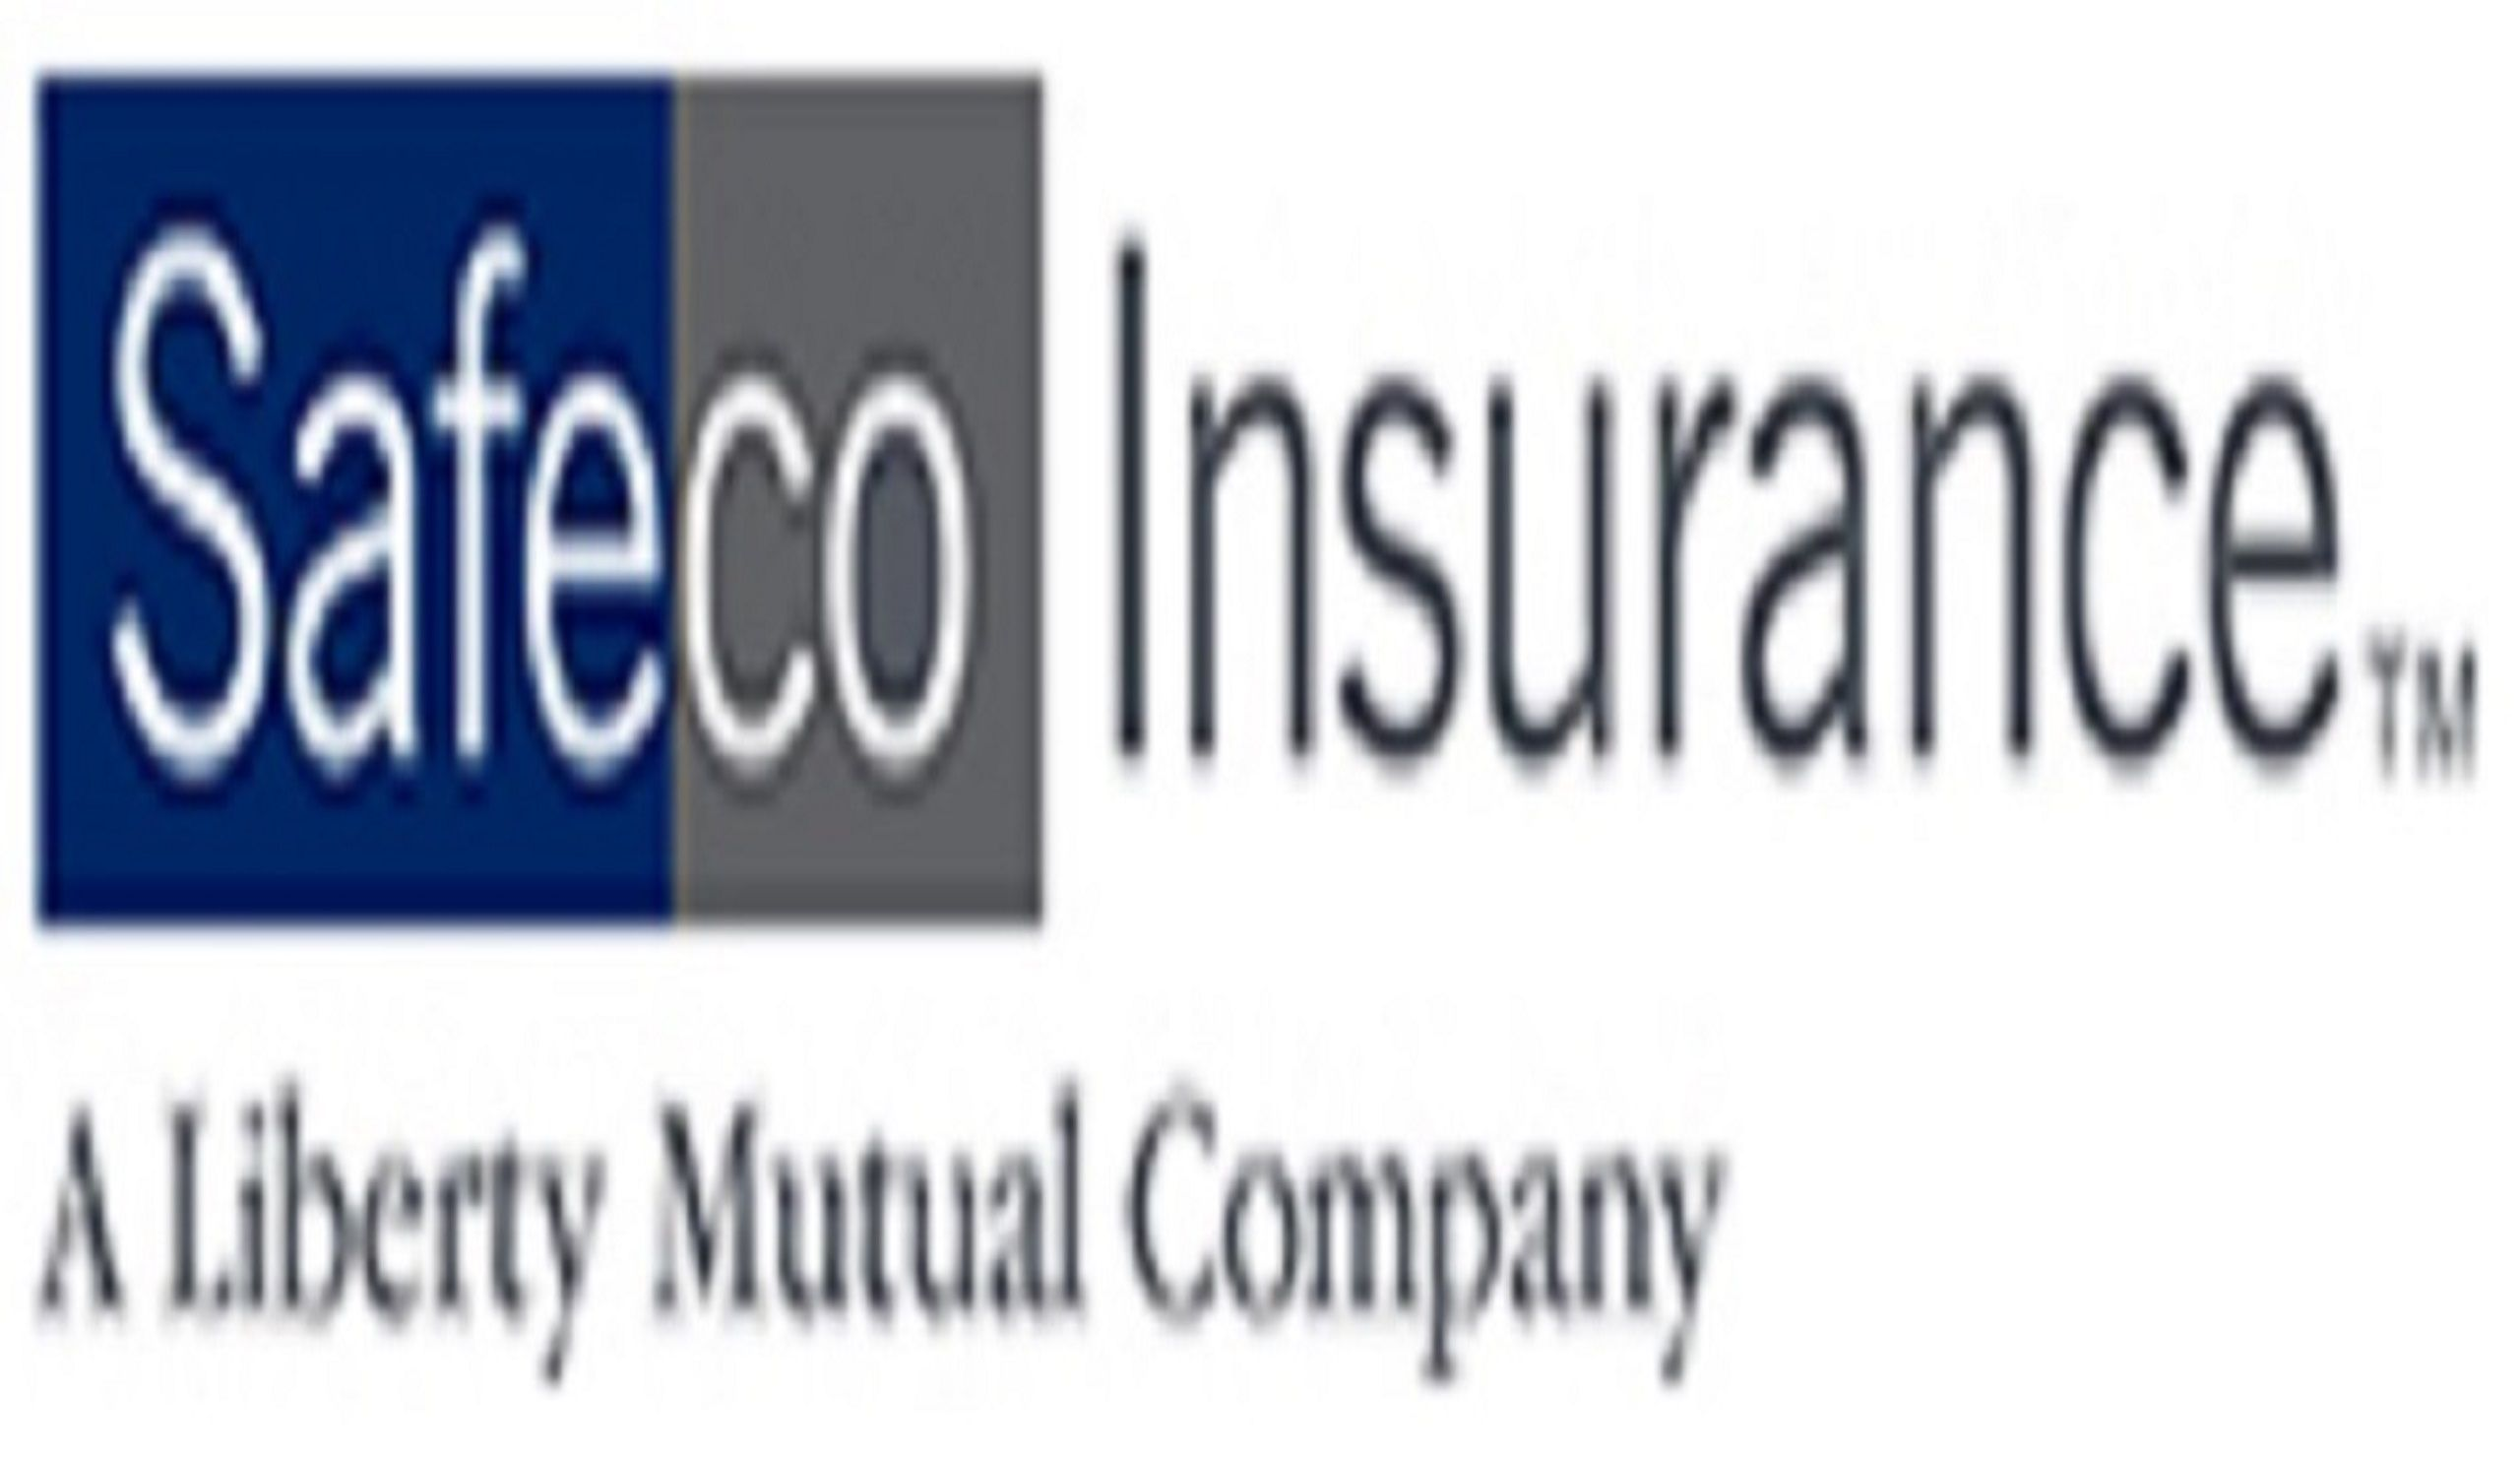 Safeco House Insurance Whether You Need A Homeowners Insurance Policy With Basic Coverage Or A Fully Loade Liberty Mutual Homeowners Insurance Insurance Agent